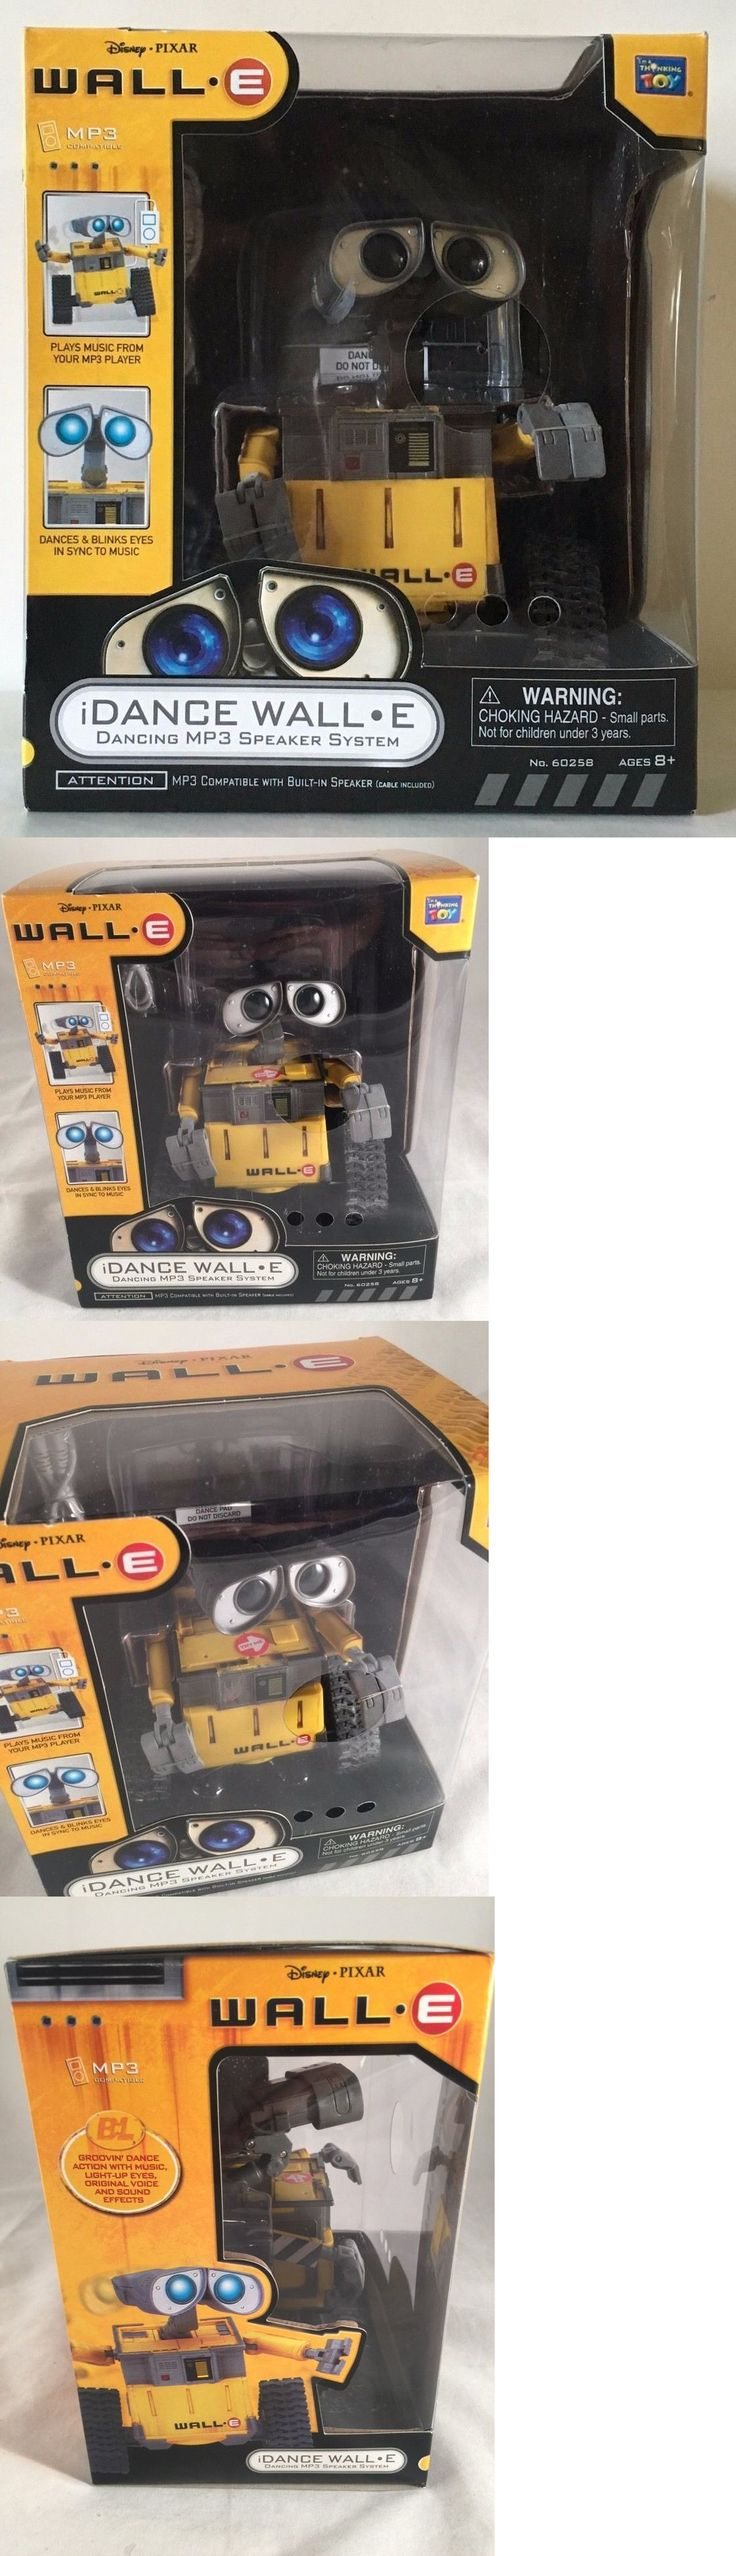 Wall-E 168209: Disney Pixar Walle Idance Mp3 Speaker System Dancing Toy Music New Collectible -> BUY IT NOW ONLY: $124.99 on eBay!